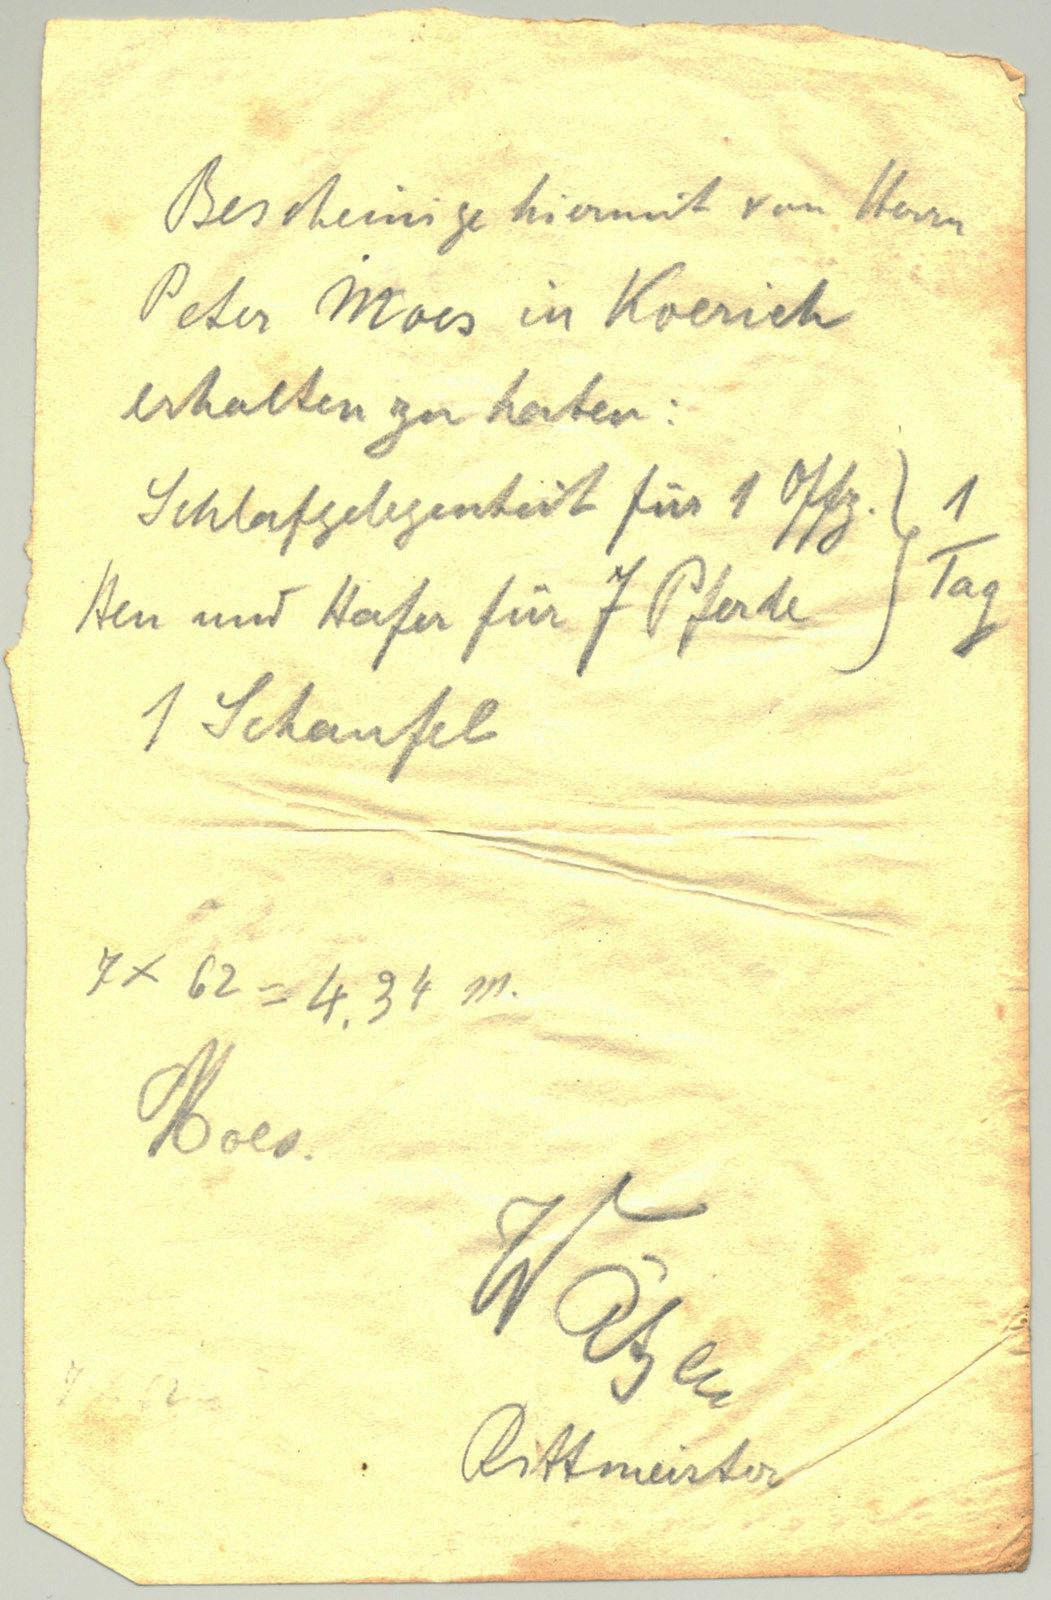 Receipt for lodging and feeding horses, August 24th, 1914, Europeana 1914- 1918 / Collection Thillenvogtei, CC BY-SA